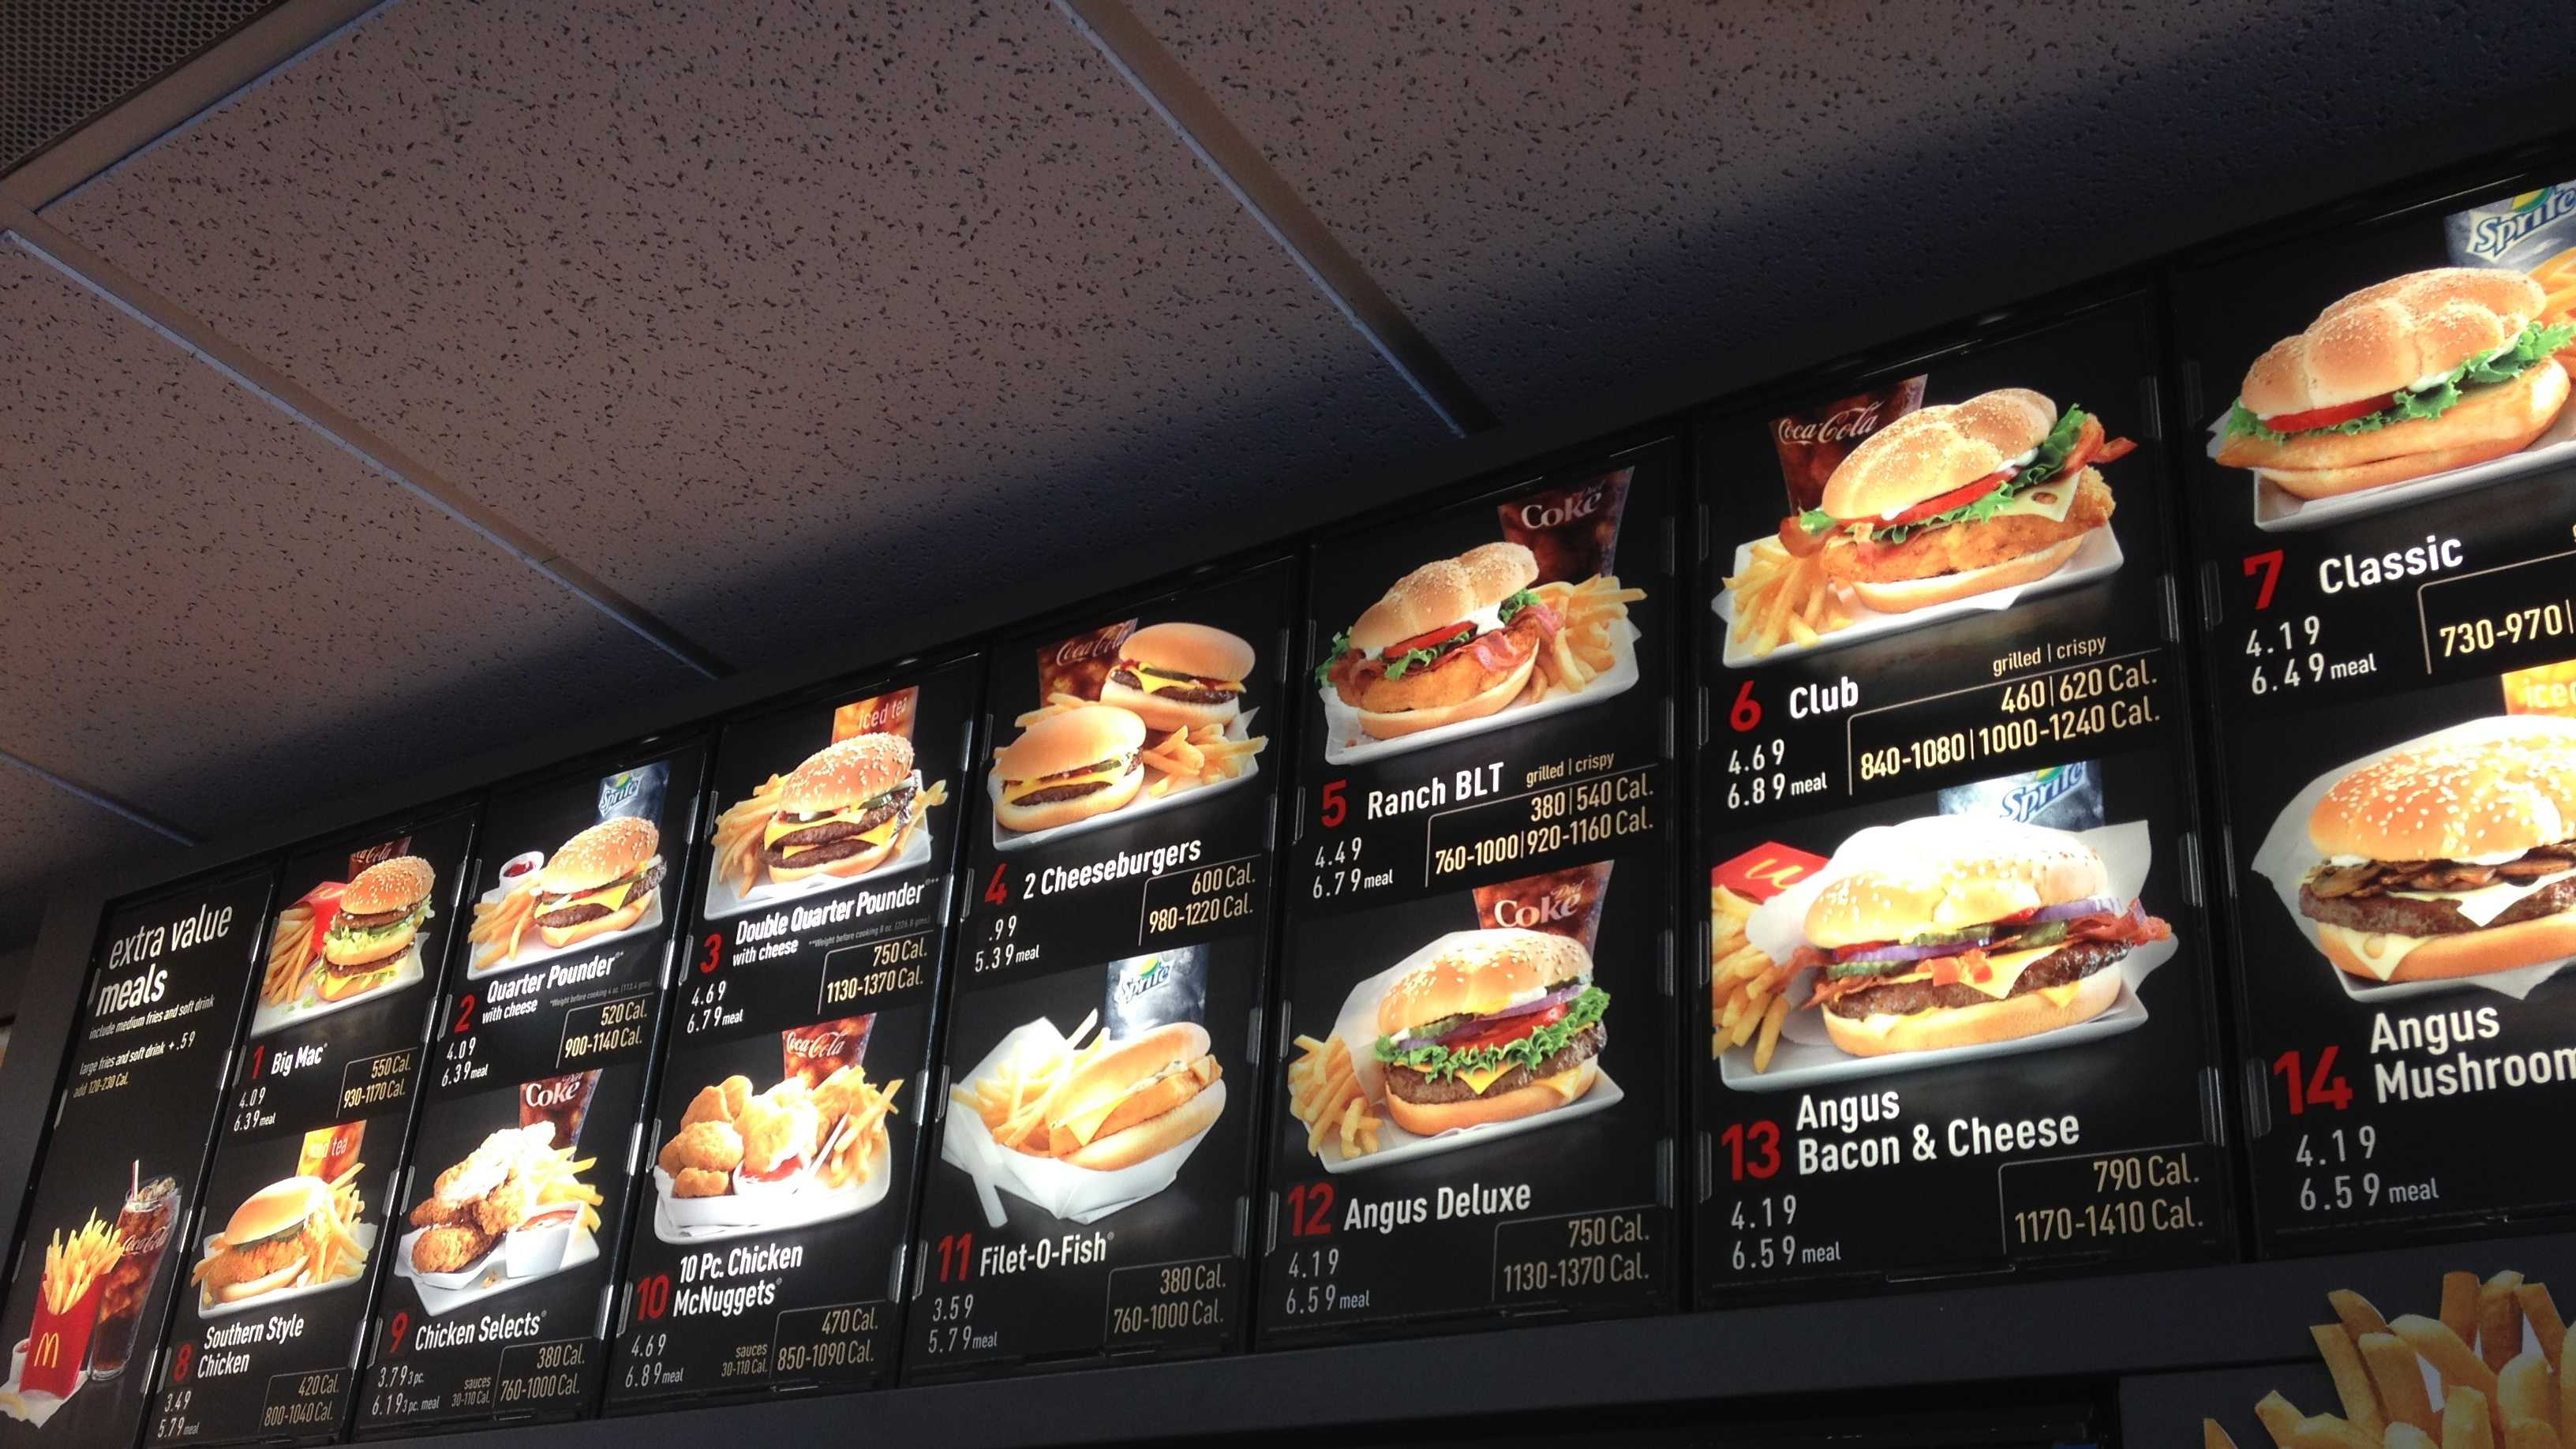 McDonald's restaurants across the country will soon get a new menu addition: The number of calories in the chain's burgers and fries.